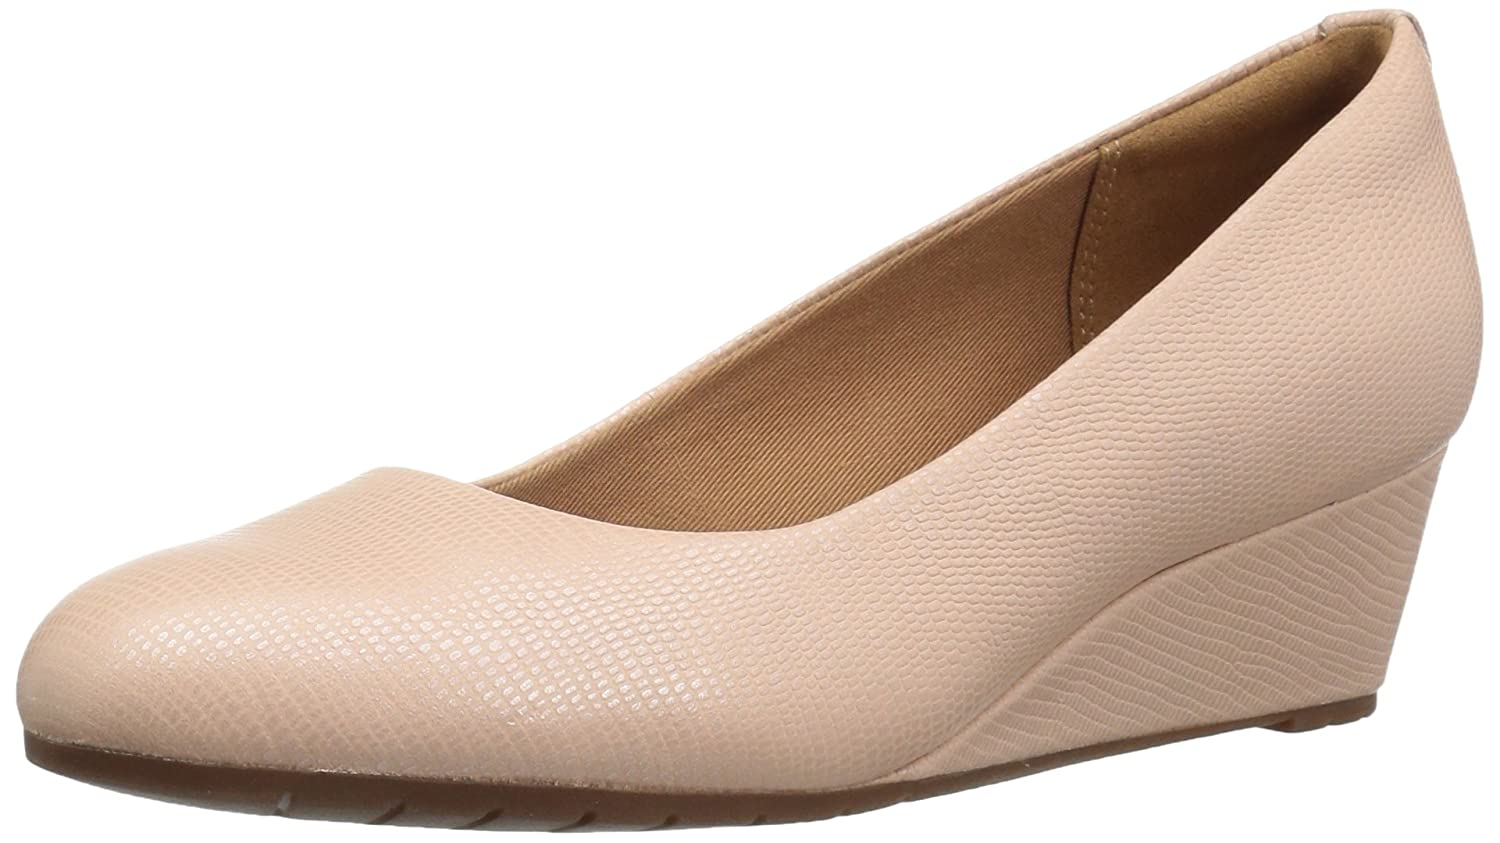 CLARKS Women's Vendra Bloom Wedge Pump B01IAMPO82 9 N US|Dusty Pink Lizard Leather